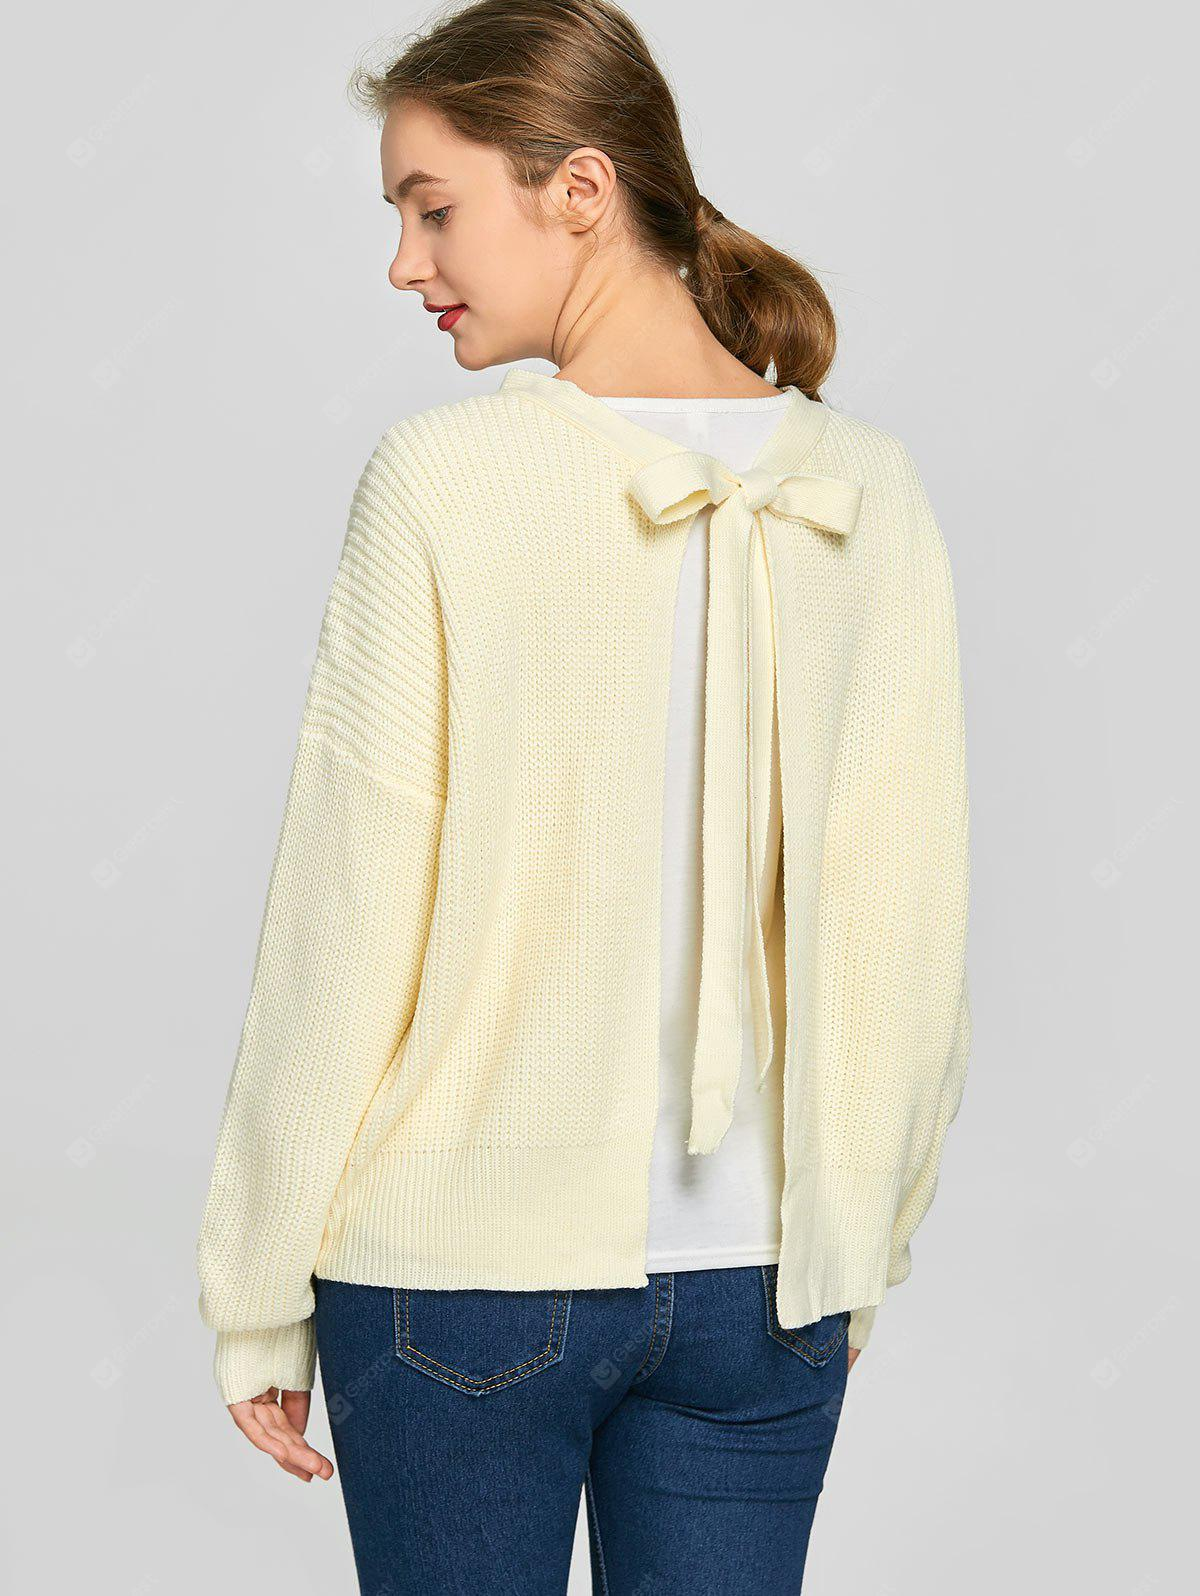 Back Self Tie Bowknot Plain Sweater